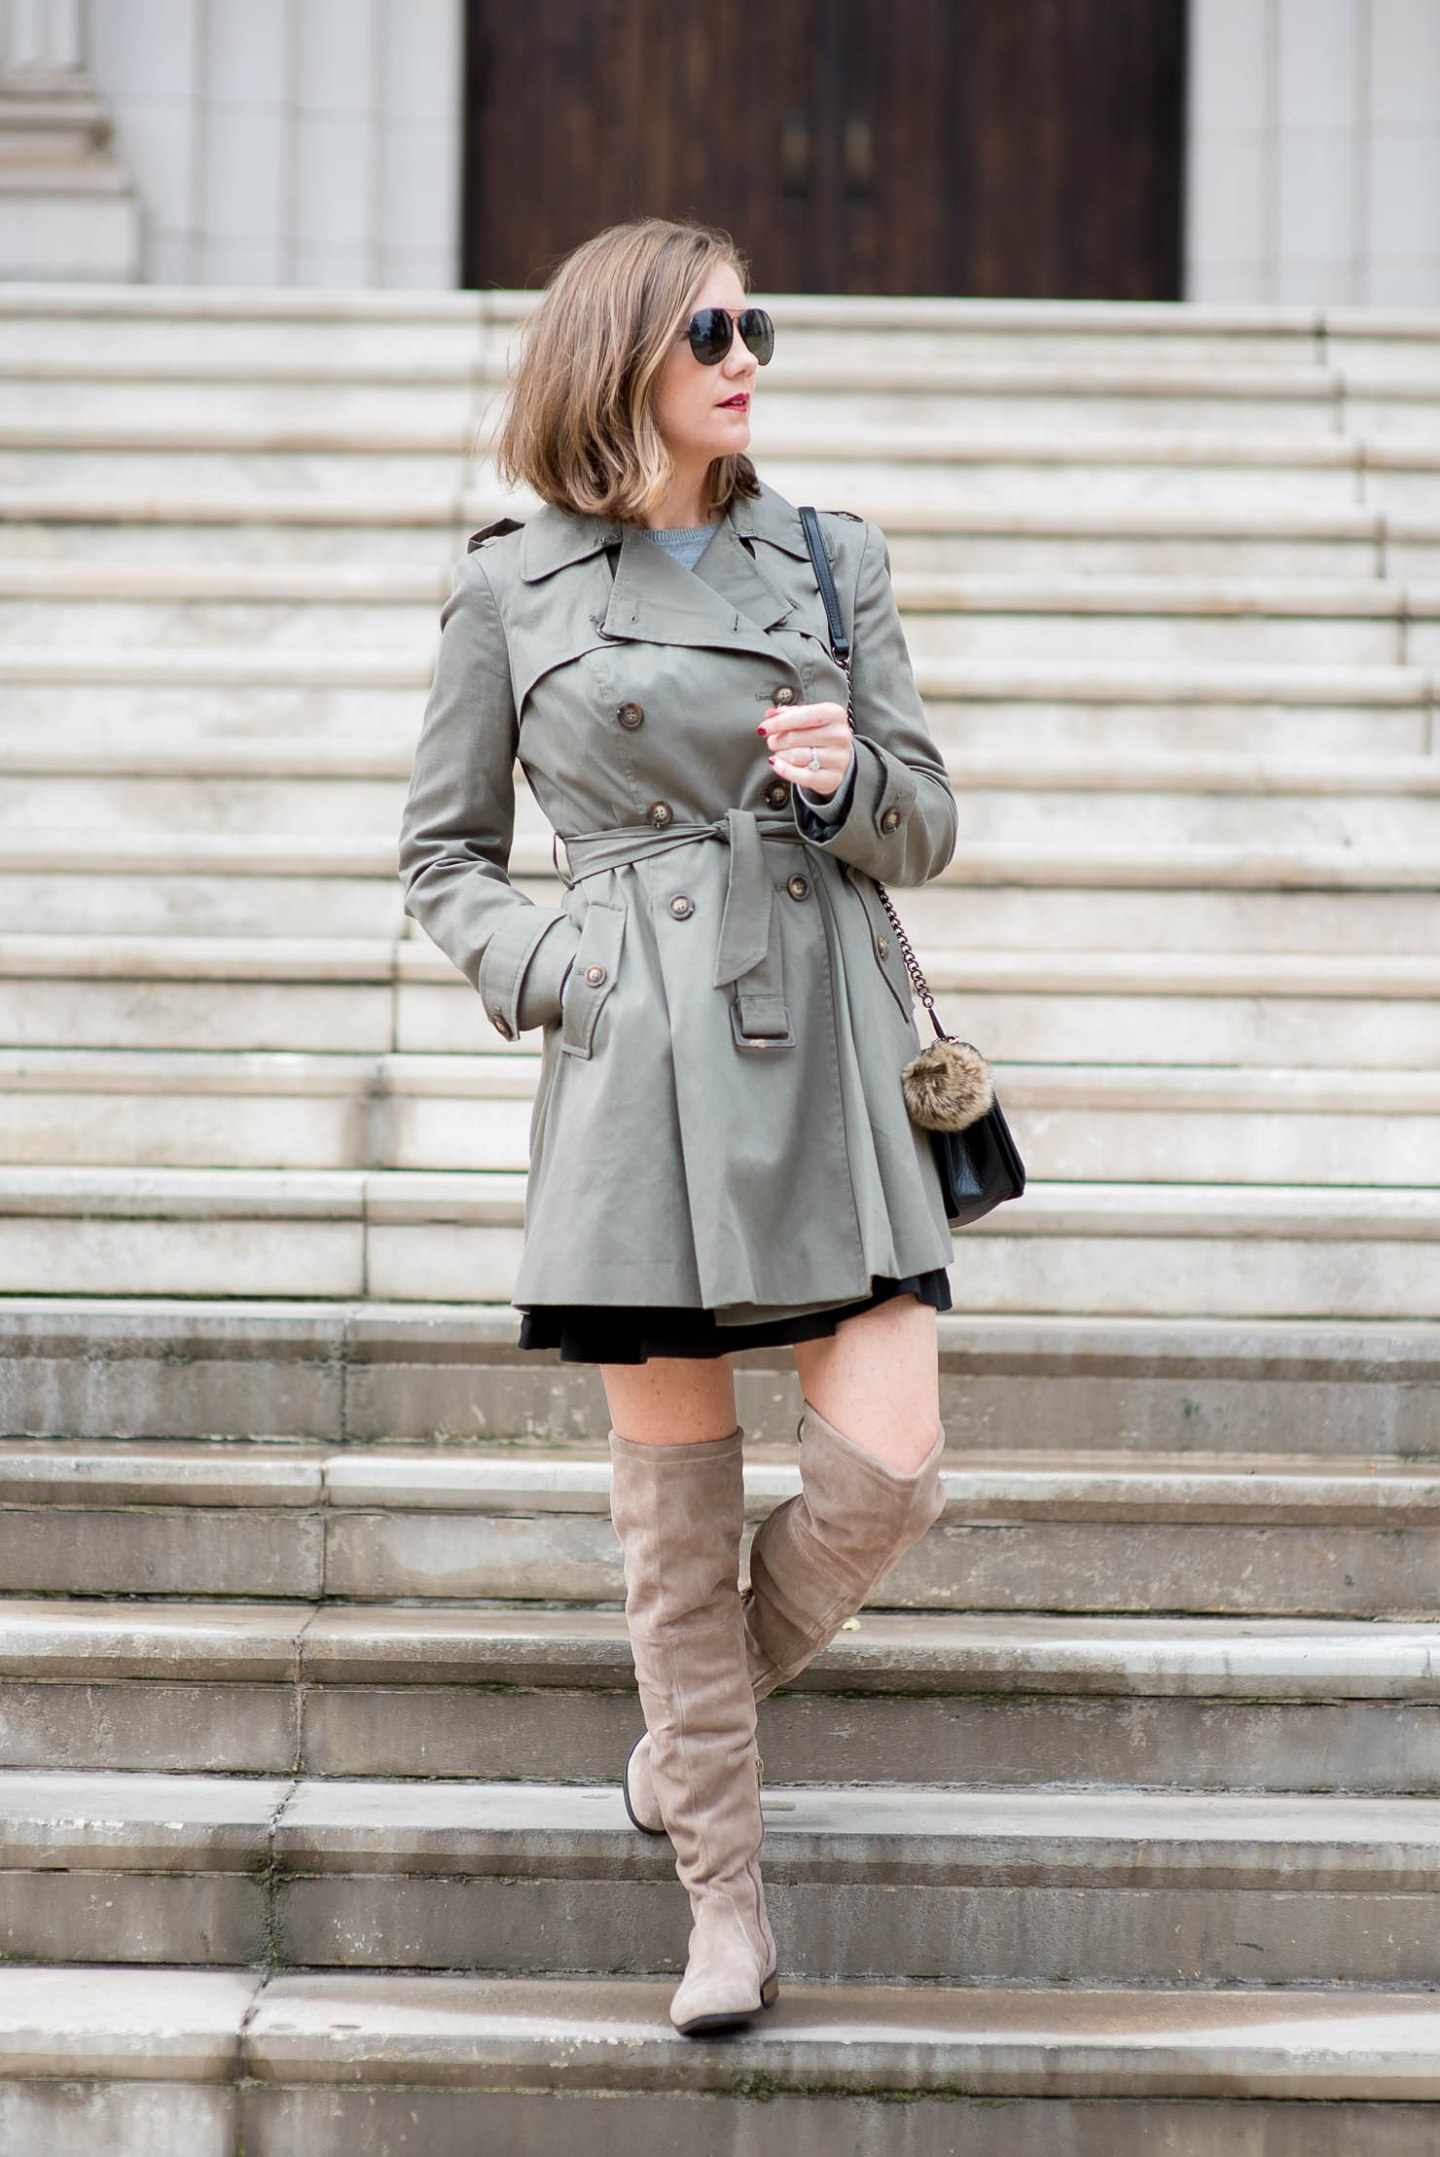 a-fall-trench-peplum-trench-over-the-knee-boots-fall-boot-trends-sole-society-valencia-stuart-weitzman-lowland-dupe